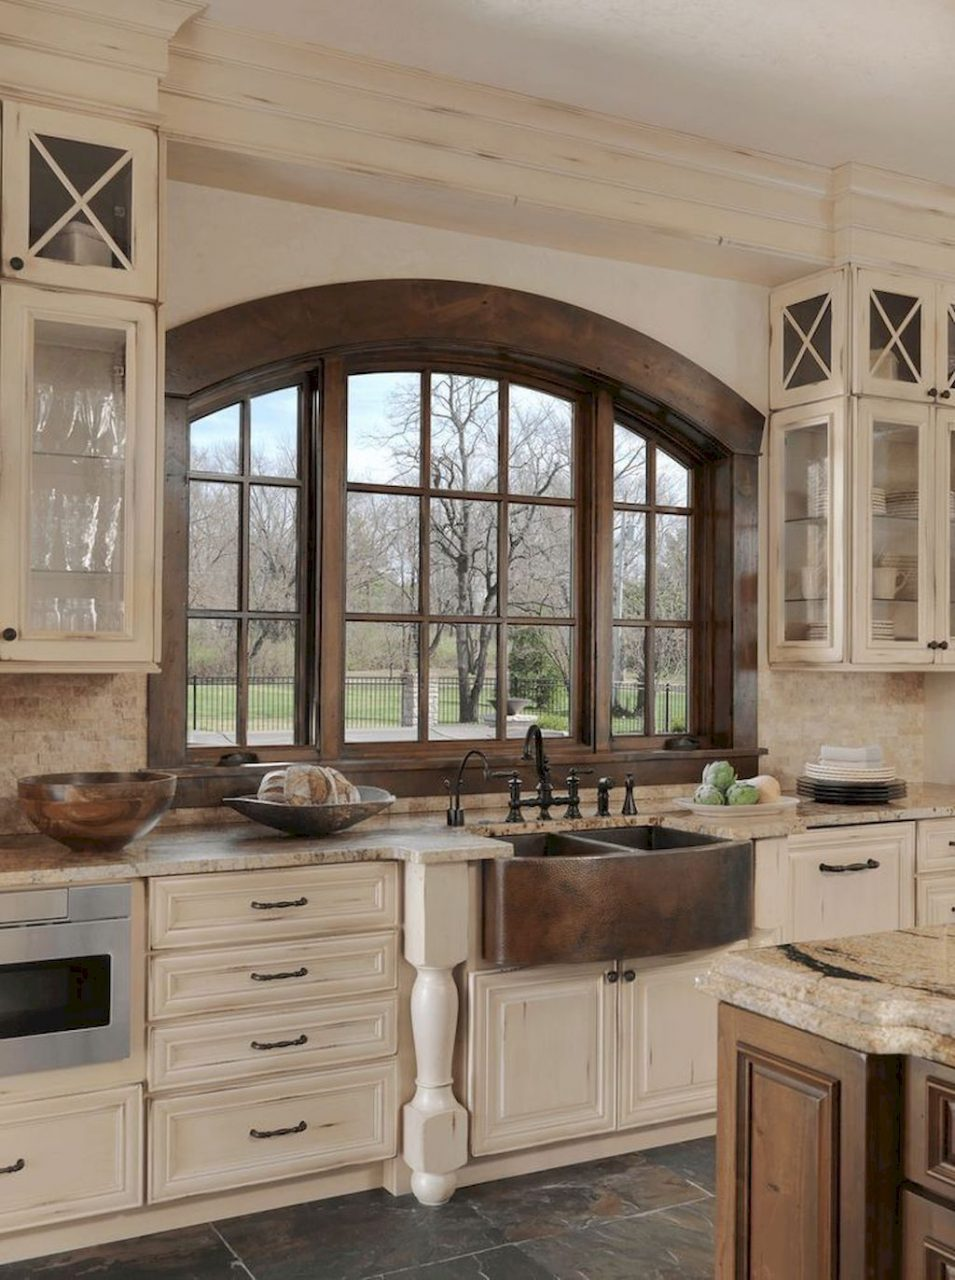 125 Modern Rustic Farmhouse Kitchen Cabinets Ideas Kitchen Remodel